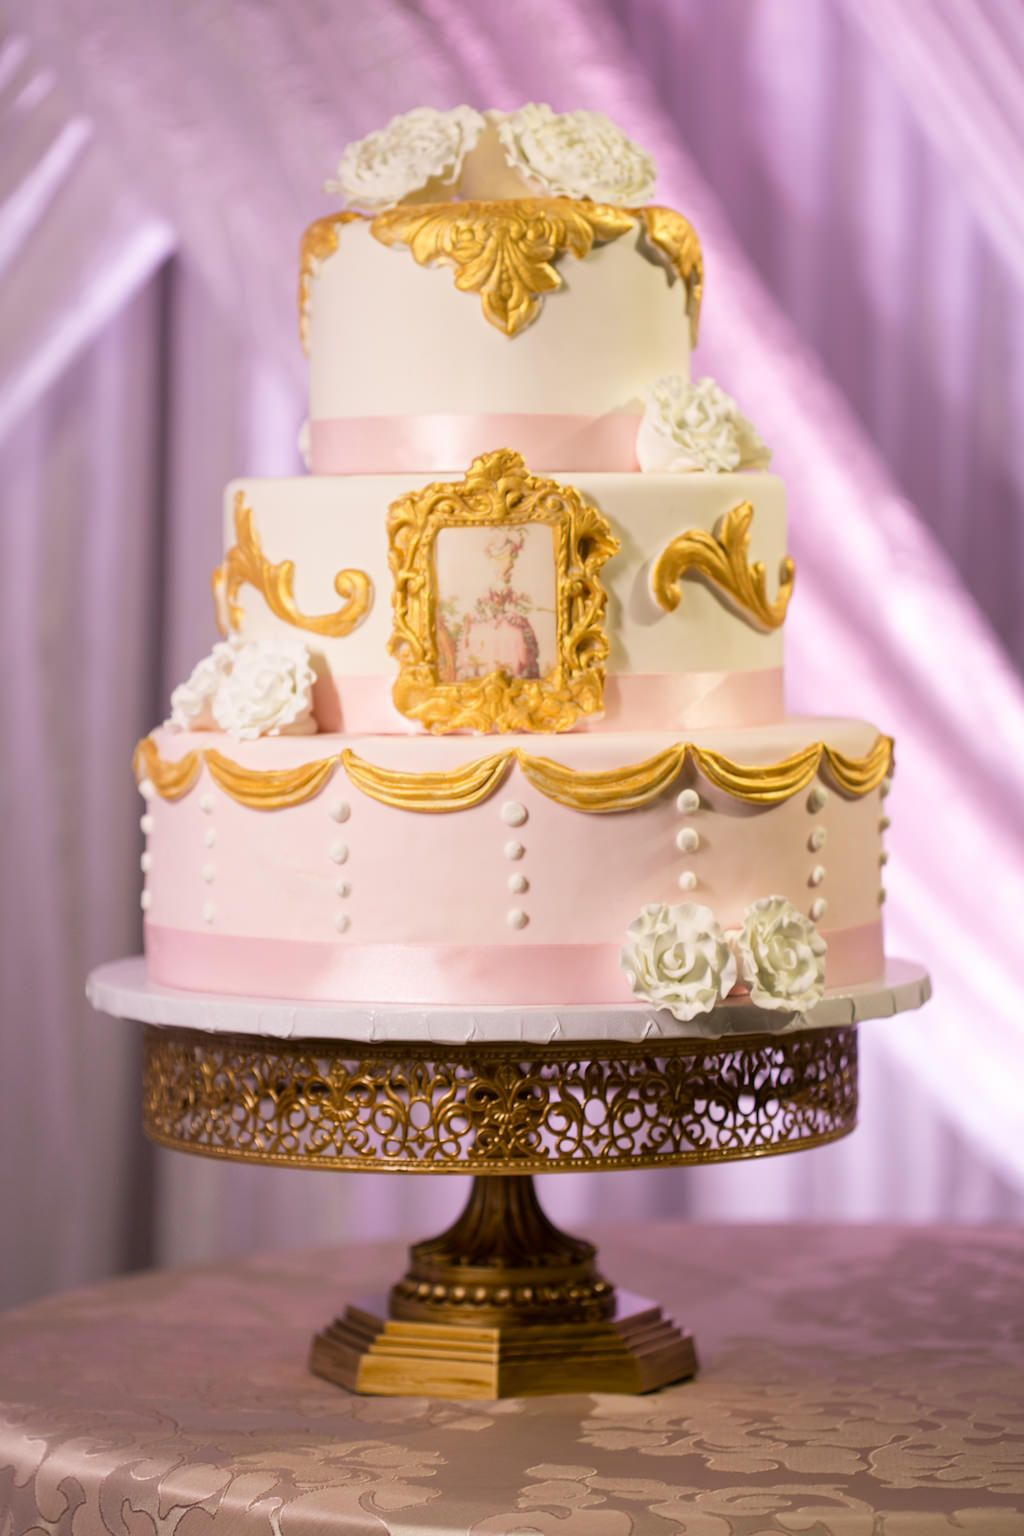 Three Tiered Round Wedding Cake with White Floral and Gold Gilded Frame Mini Portrait and Pink Ribbon Icing Decor on Antique Gold Cake Stand | Luxurious St Pete Wedding at Venue NOVA 535